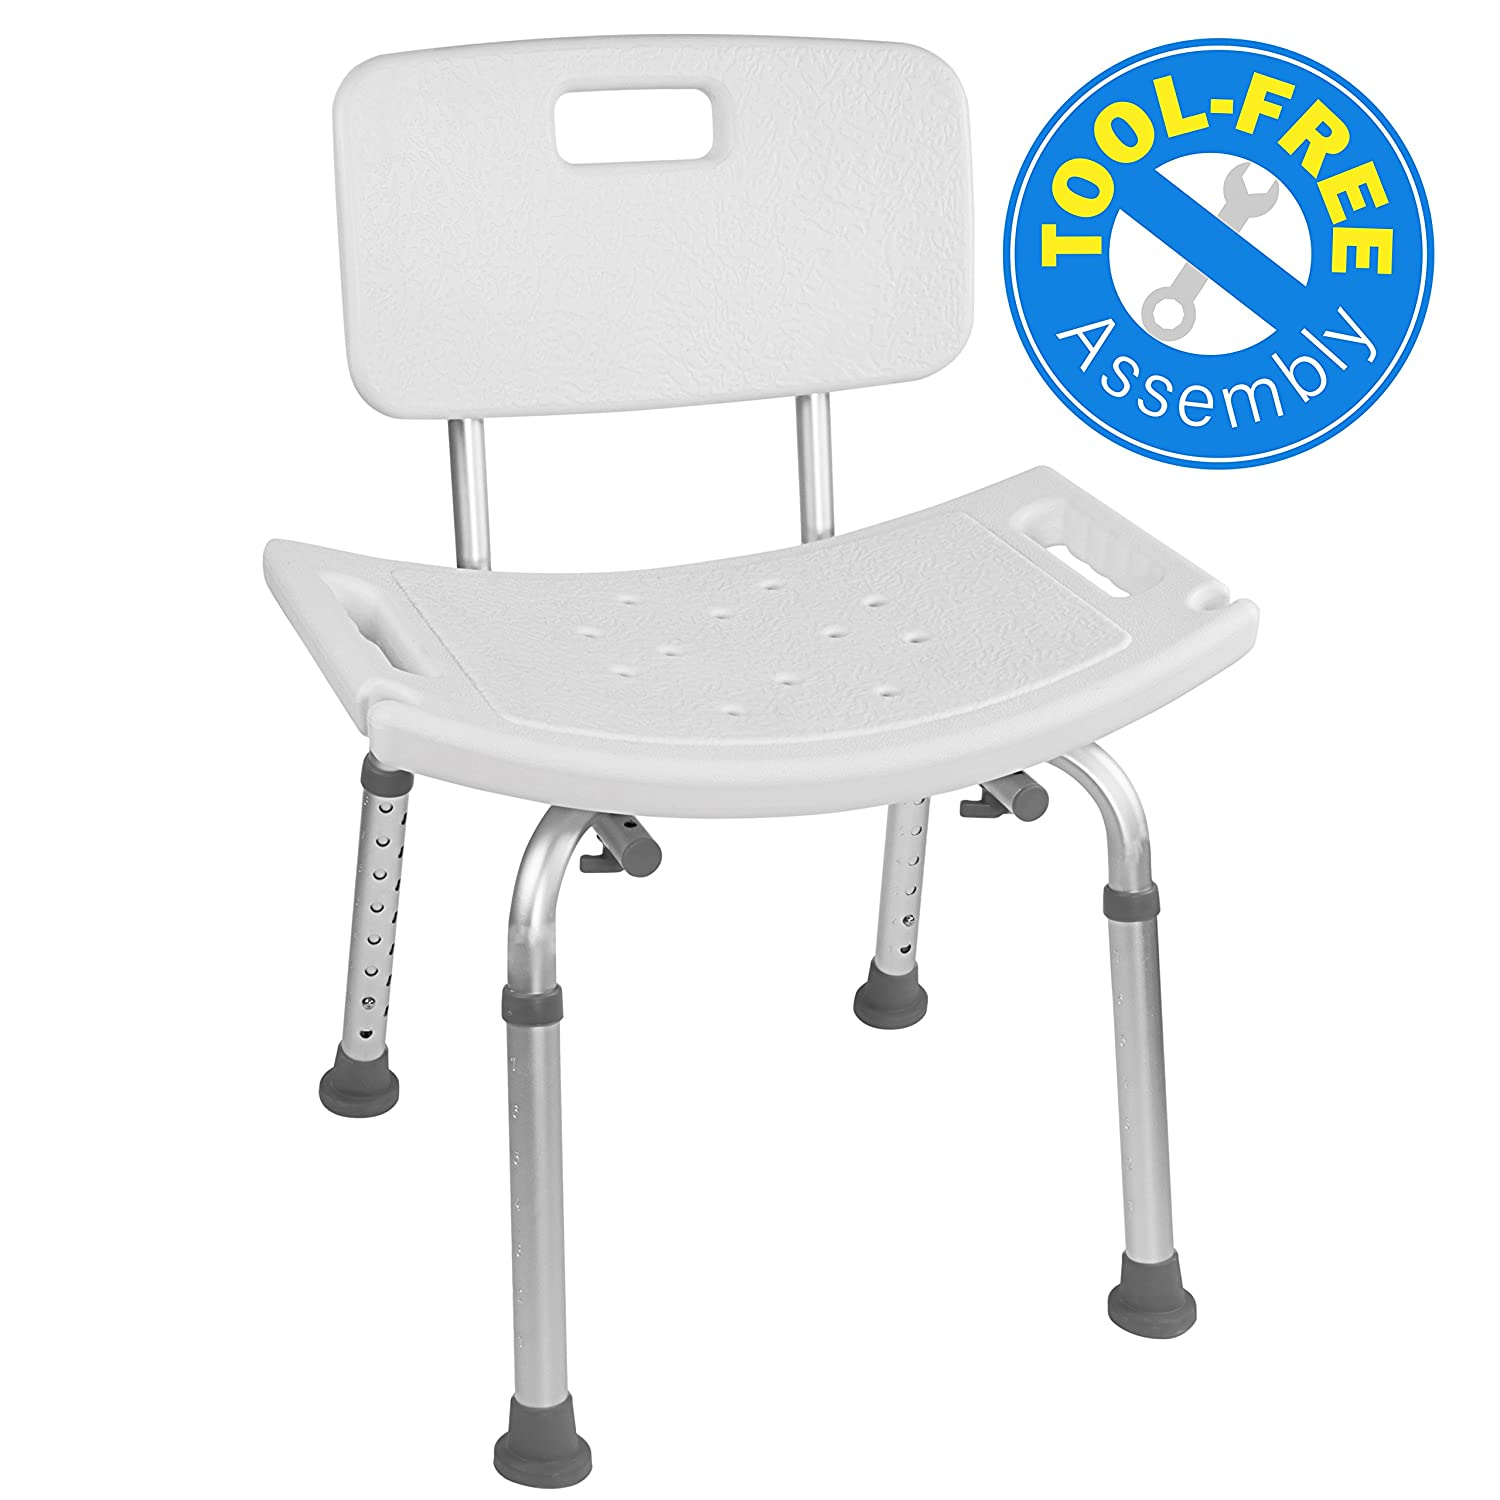 Amazon com medical tool free assembly spa bathtub adjustable shower chair seat bench with removable back health personal care